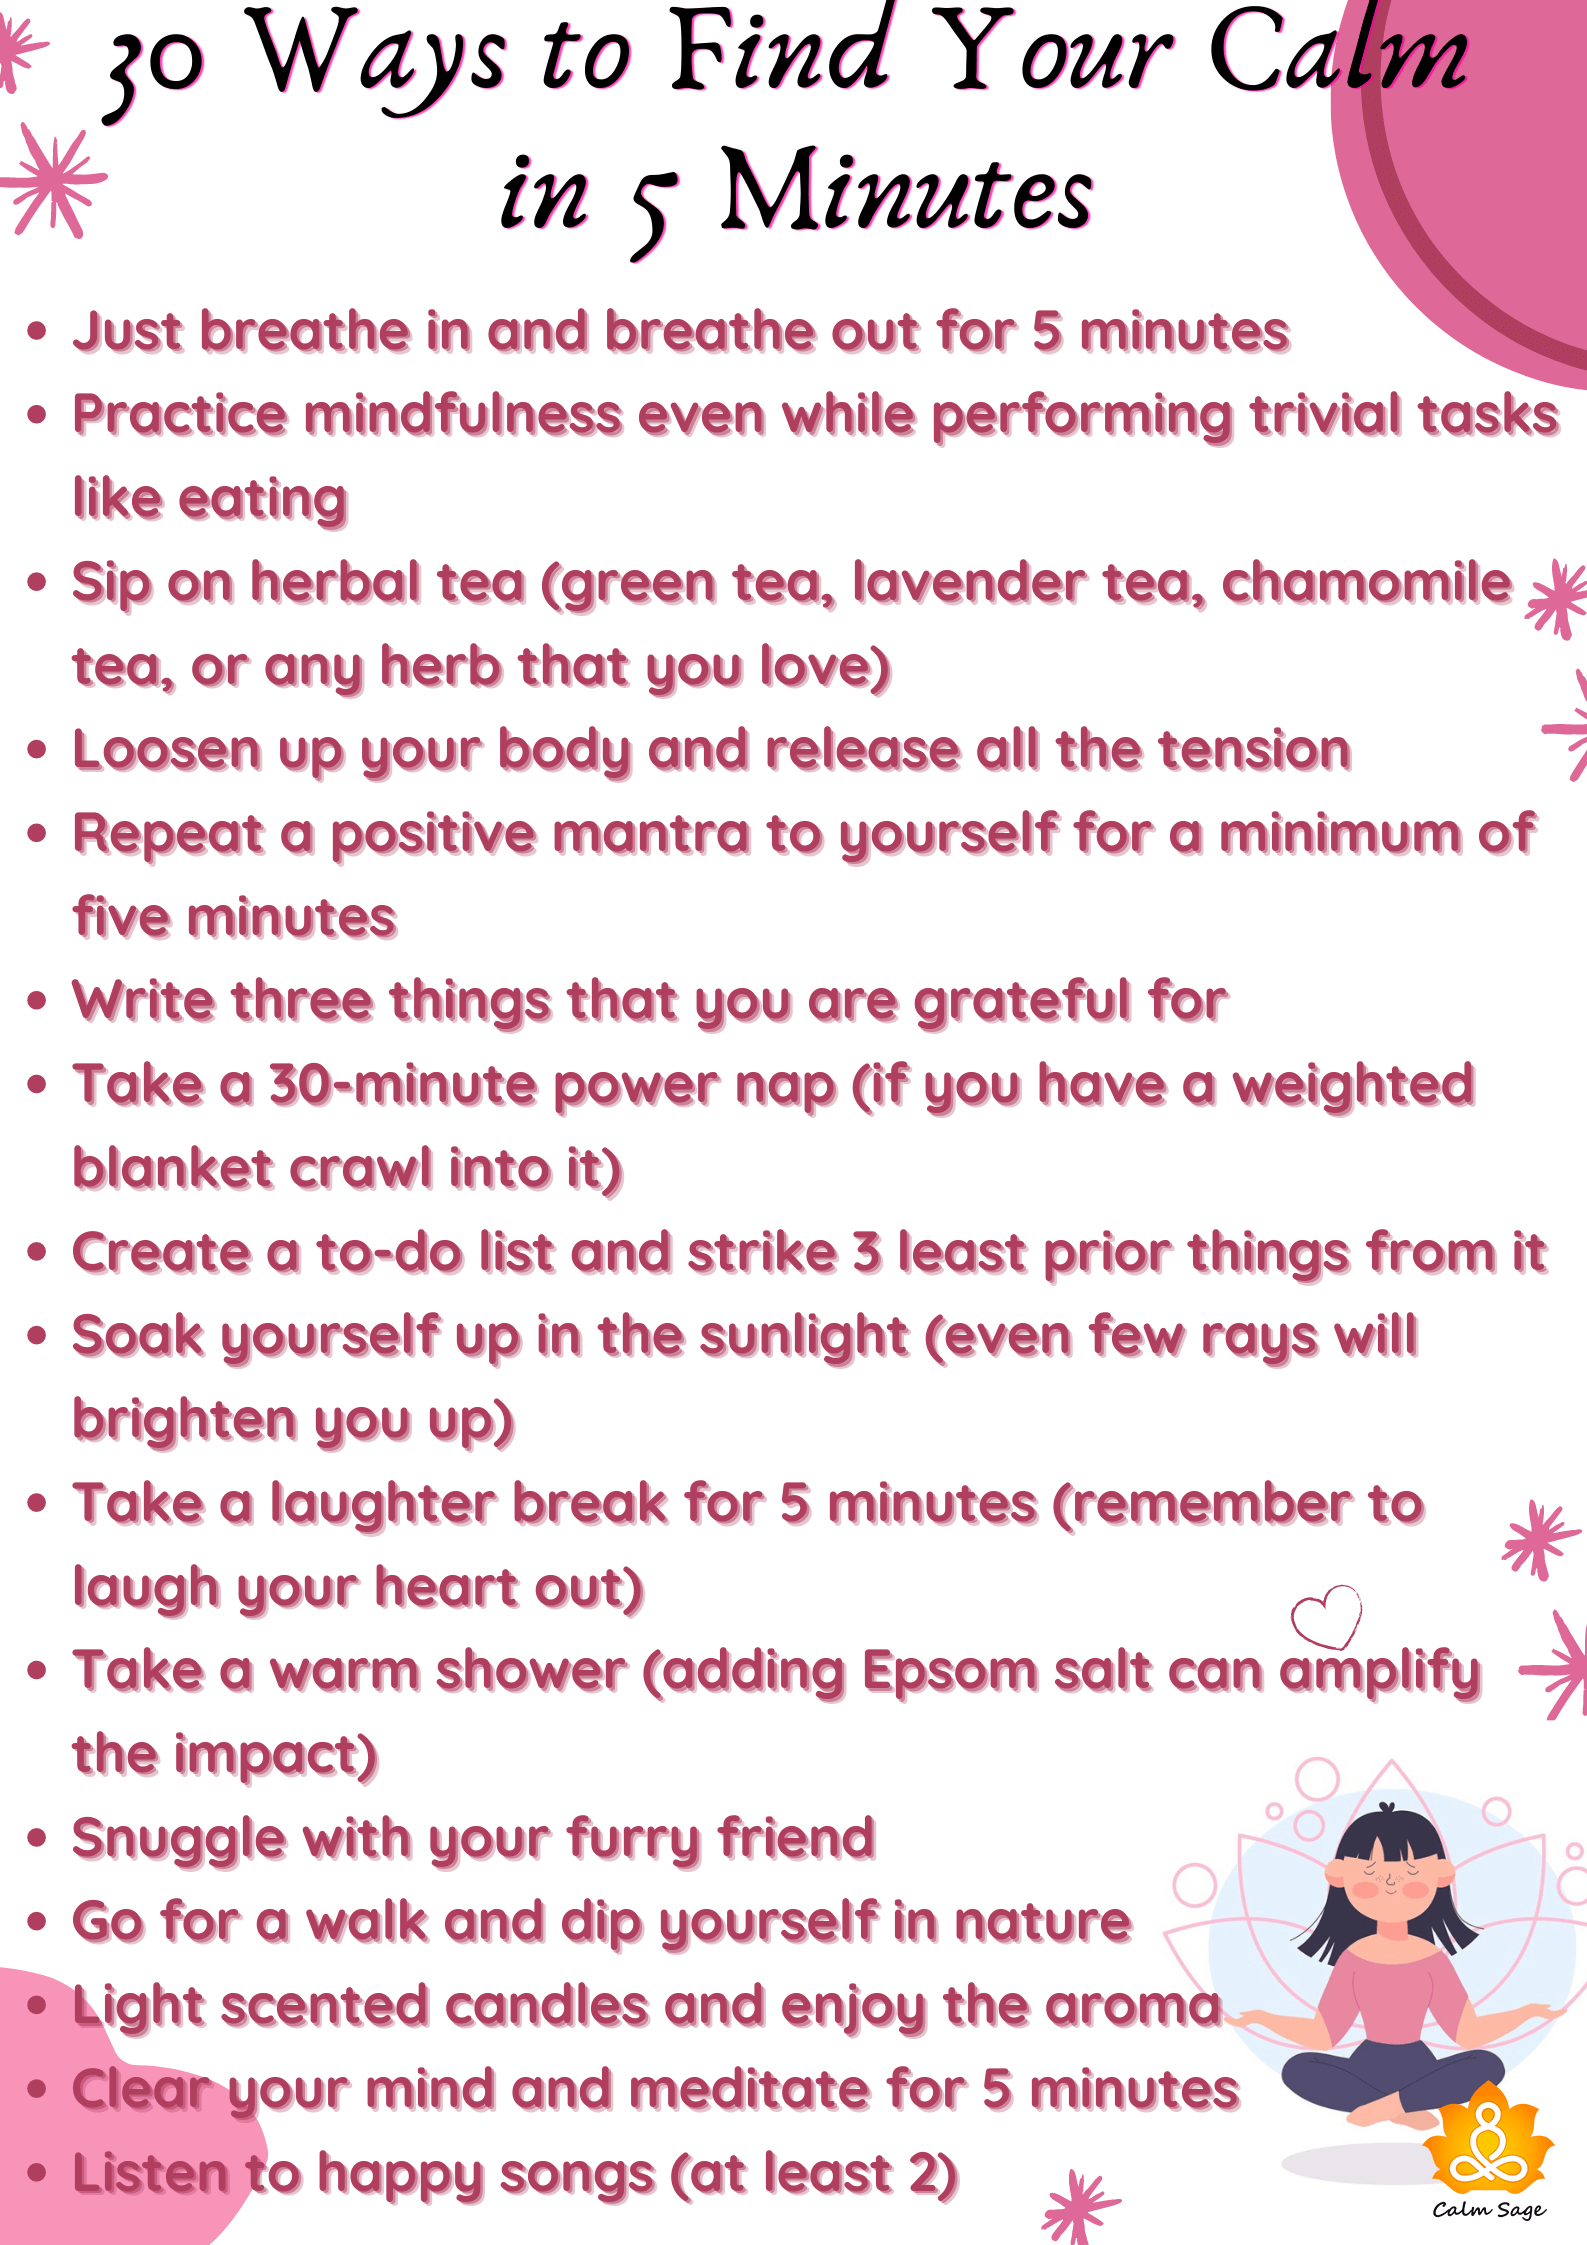 Ways to find your calm